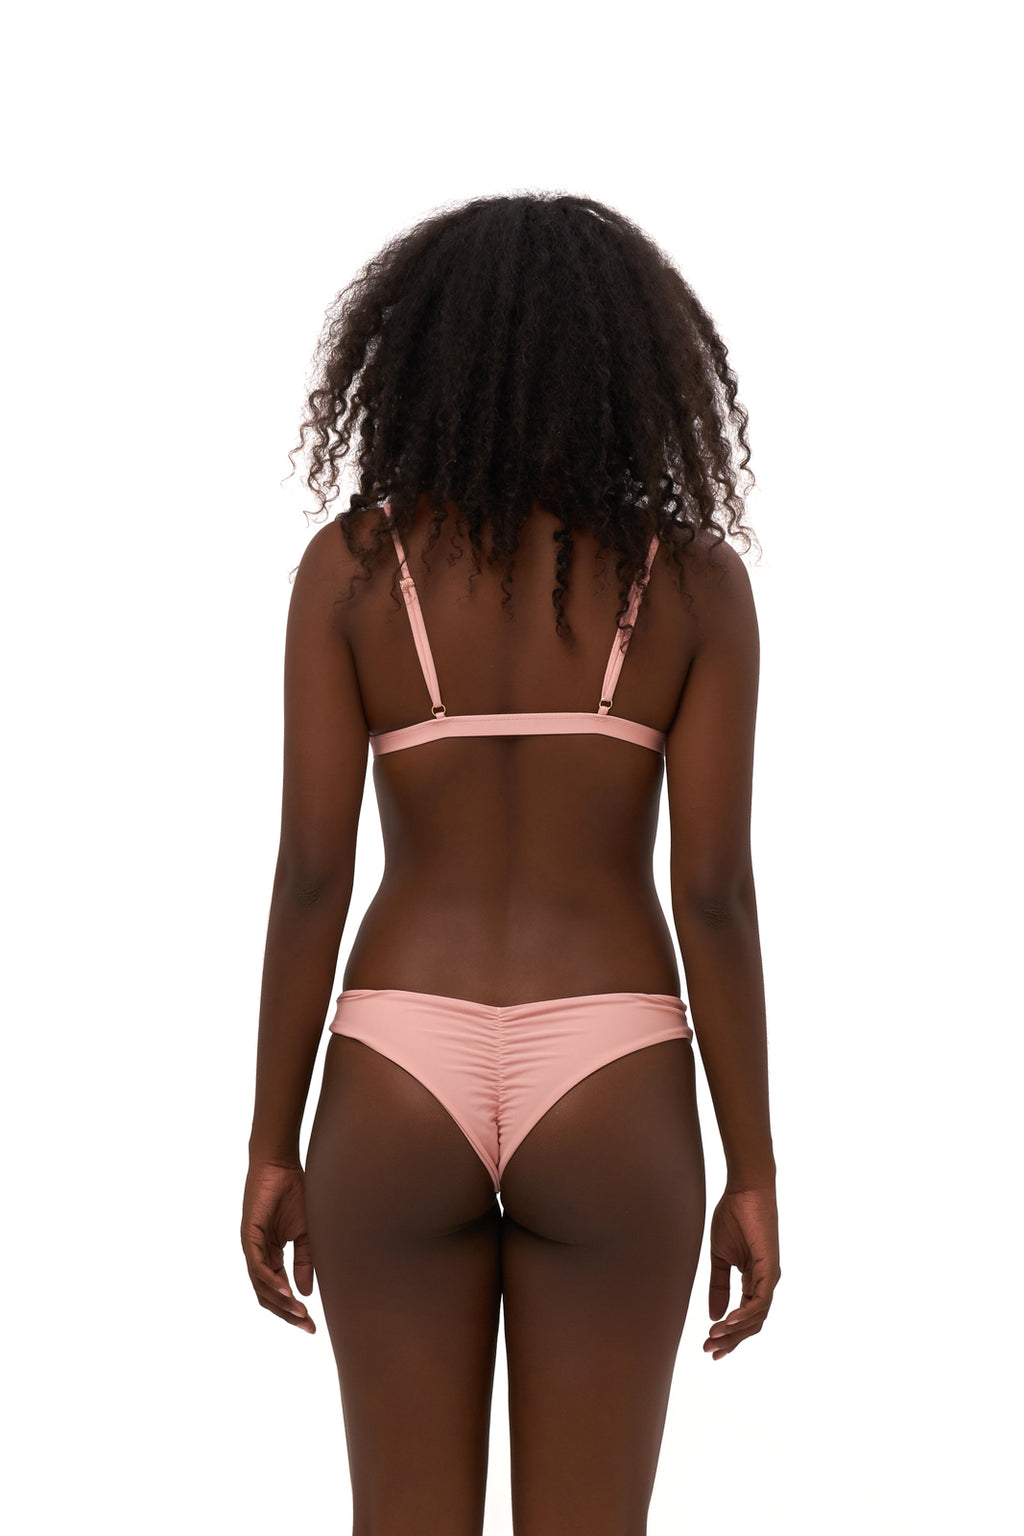 Storm Swimwear - Aruba - Centre Back Ruche Bikini Bottom in Coral Cloud